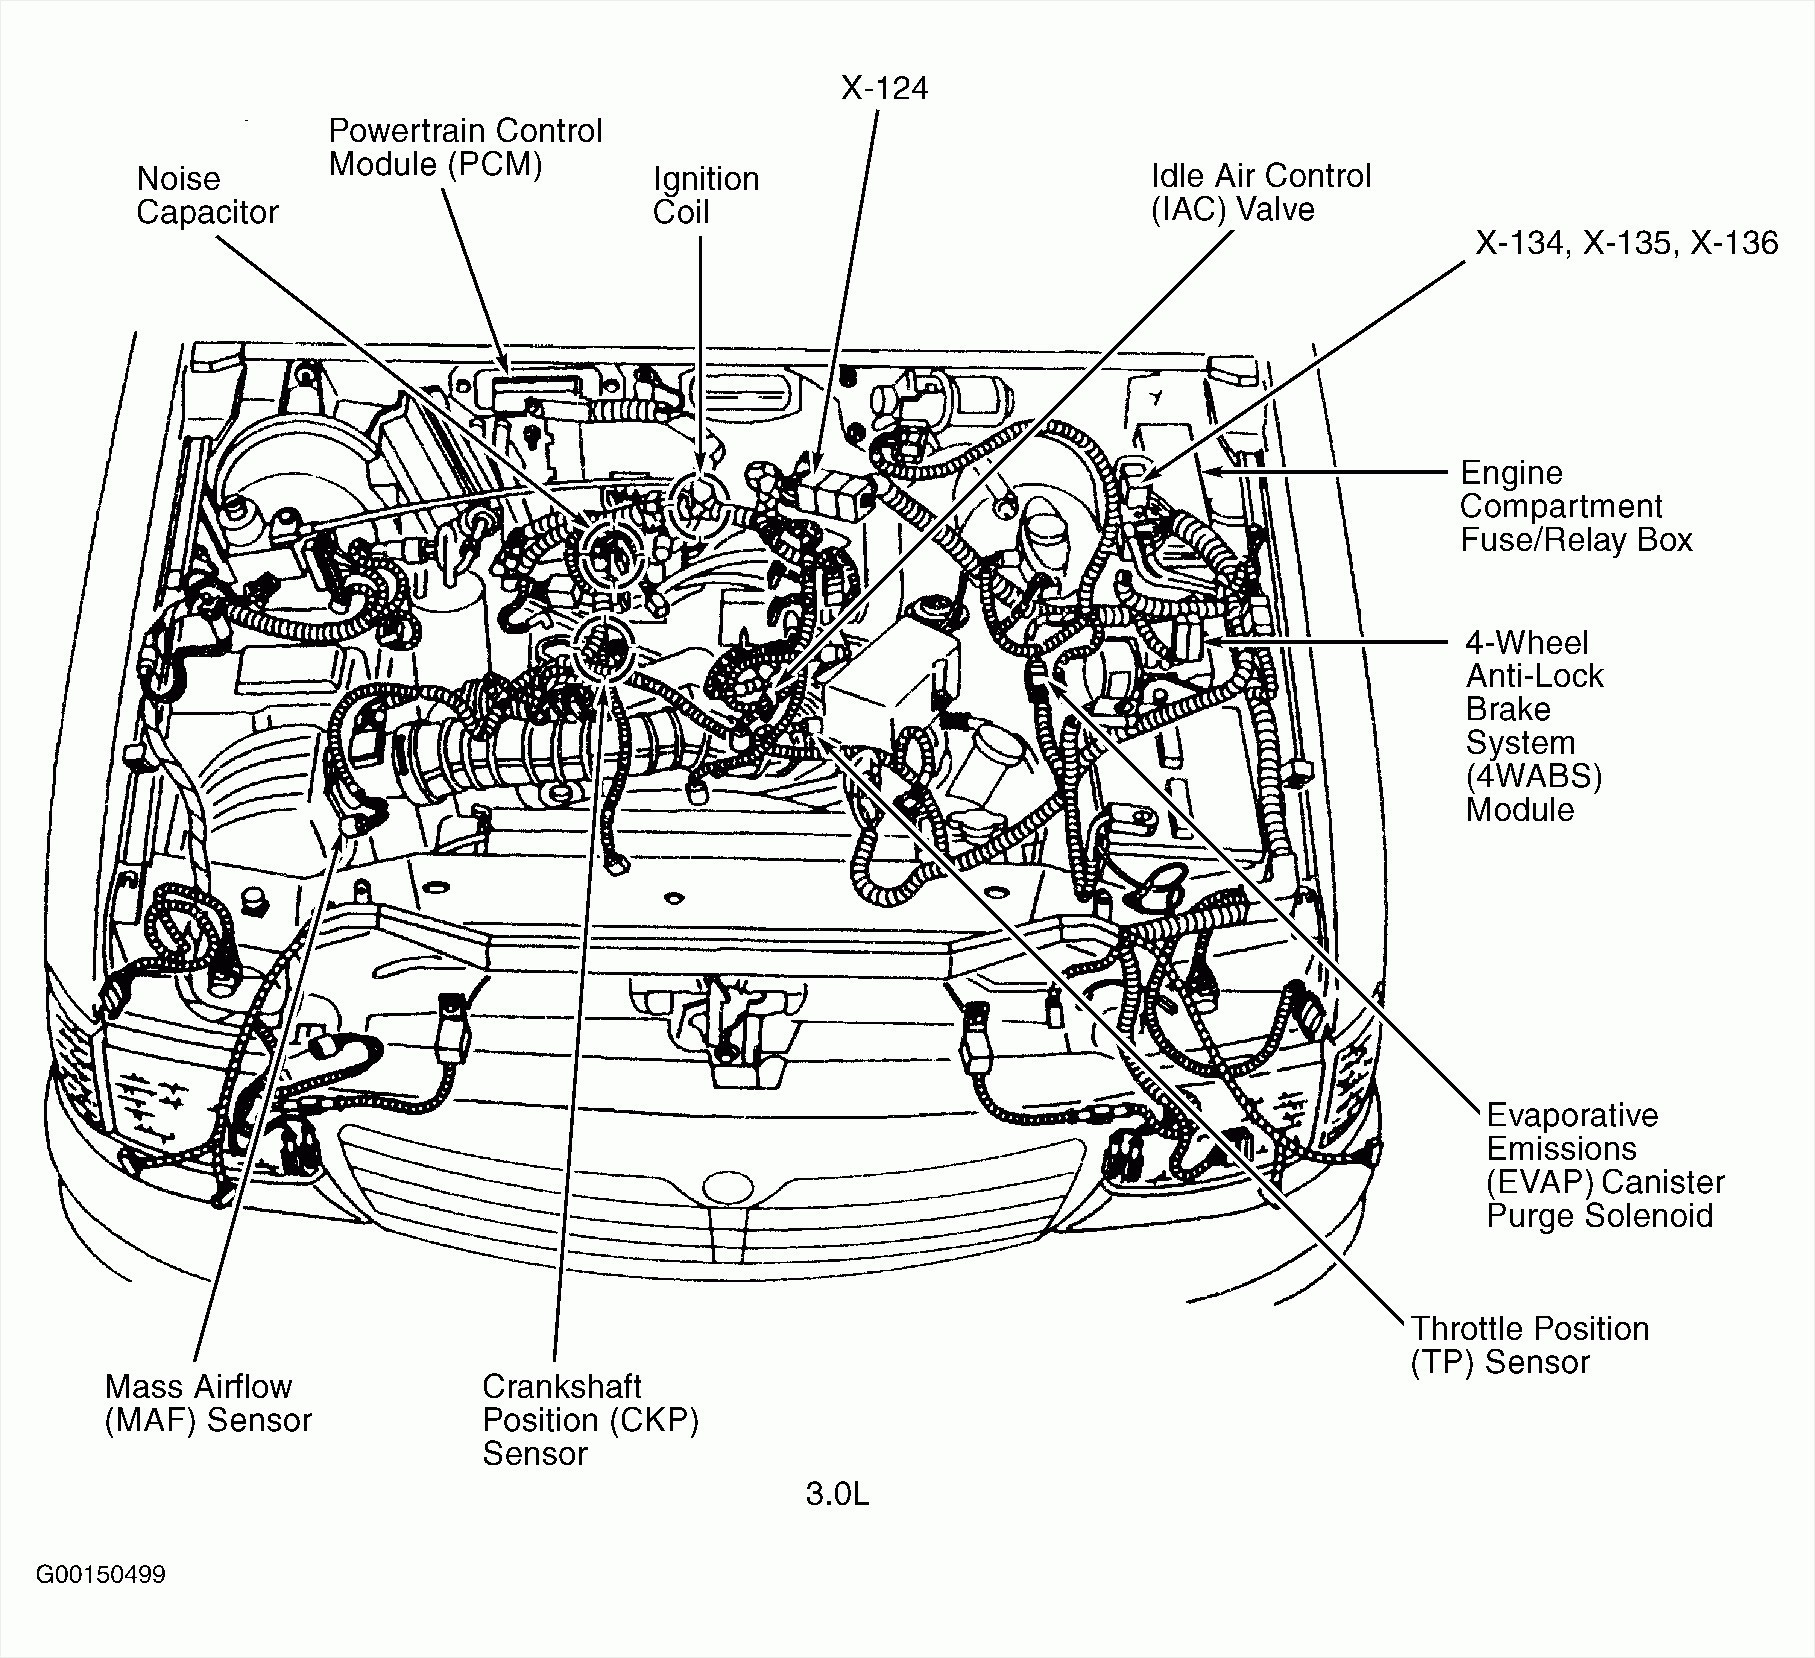 2001 ford focus ignition coil wiring diagram a mx5 engine bay | my